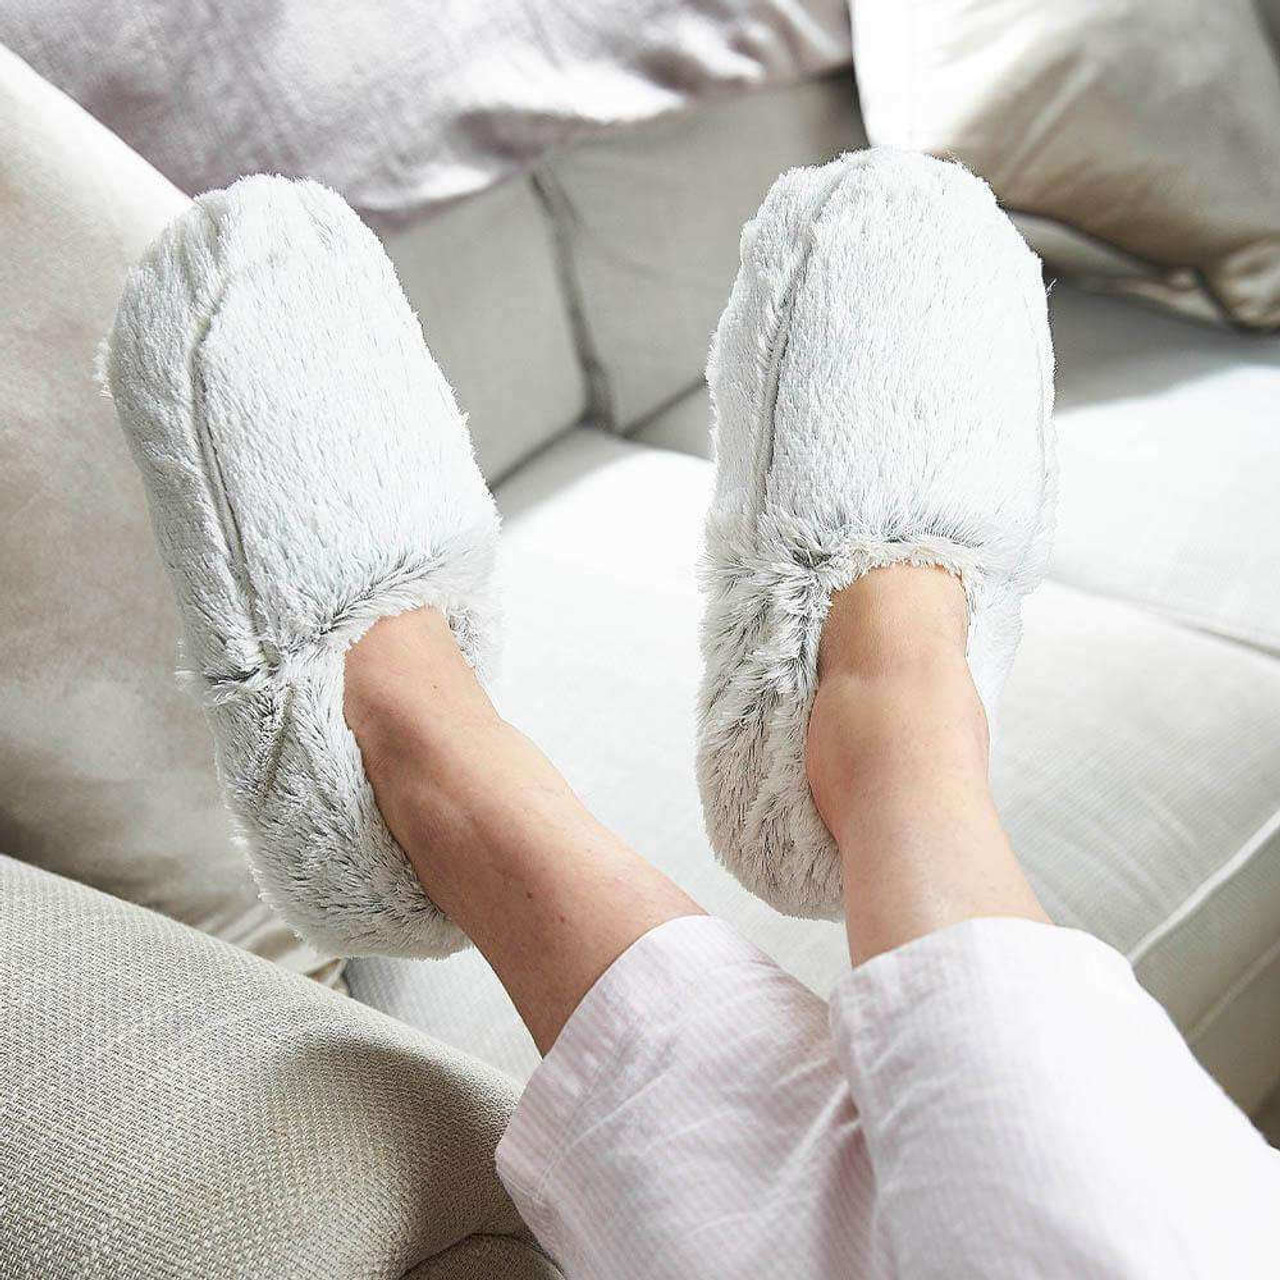 Slippers in Marshmallow Gray